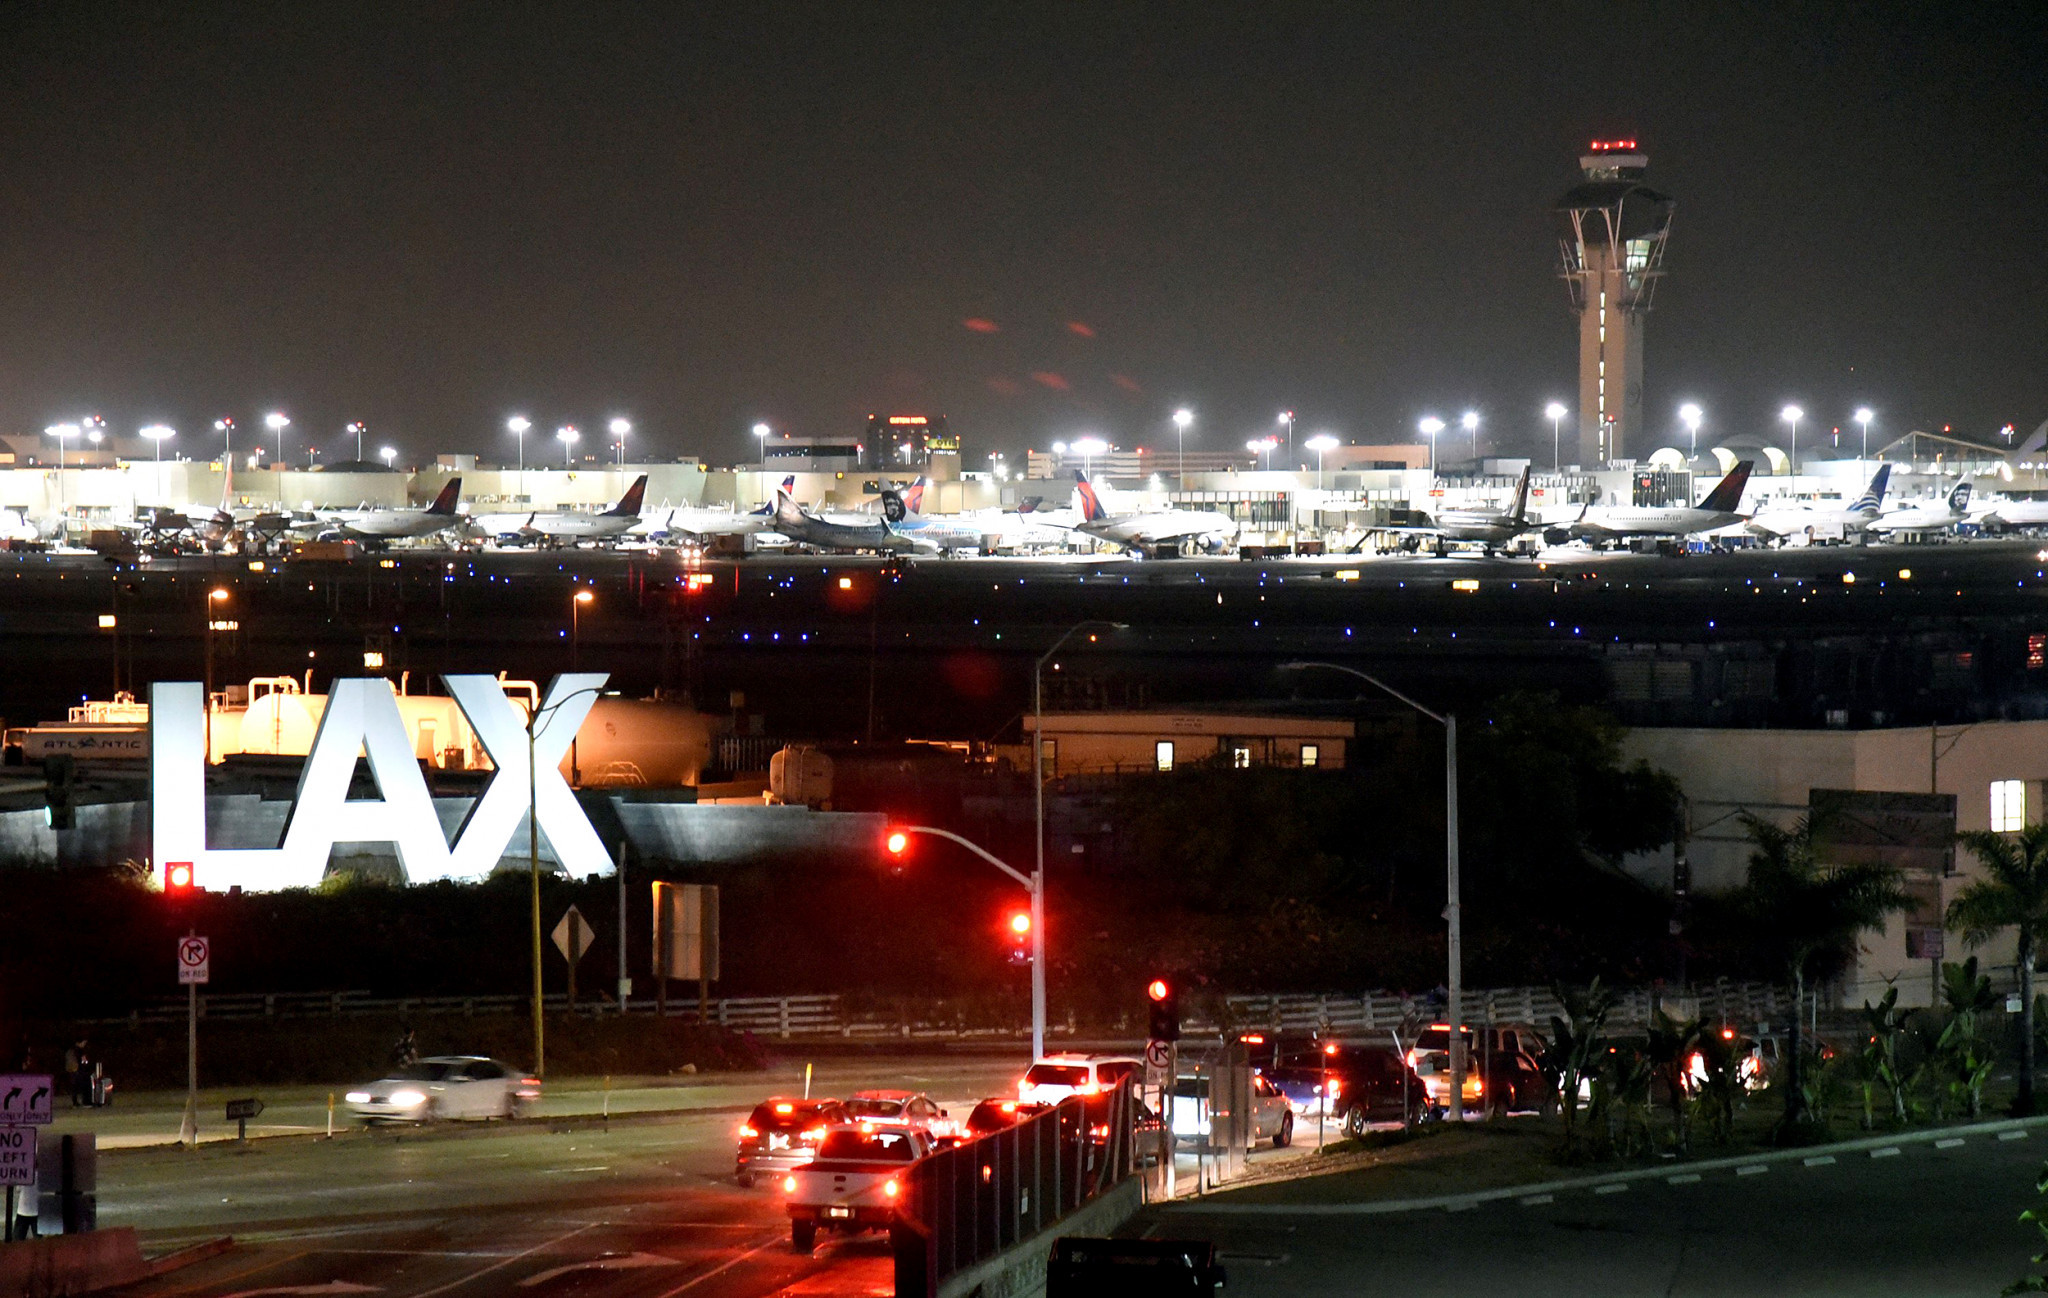 Modernisation work starts on Los Angeles International Airport as 2028 Olympic deadline approaches